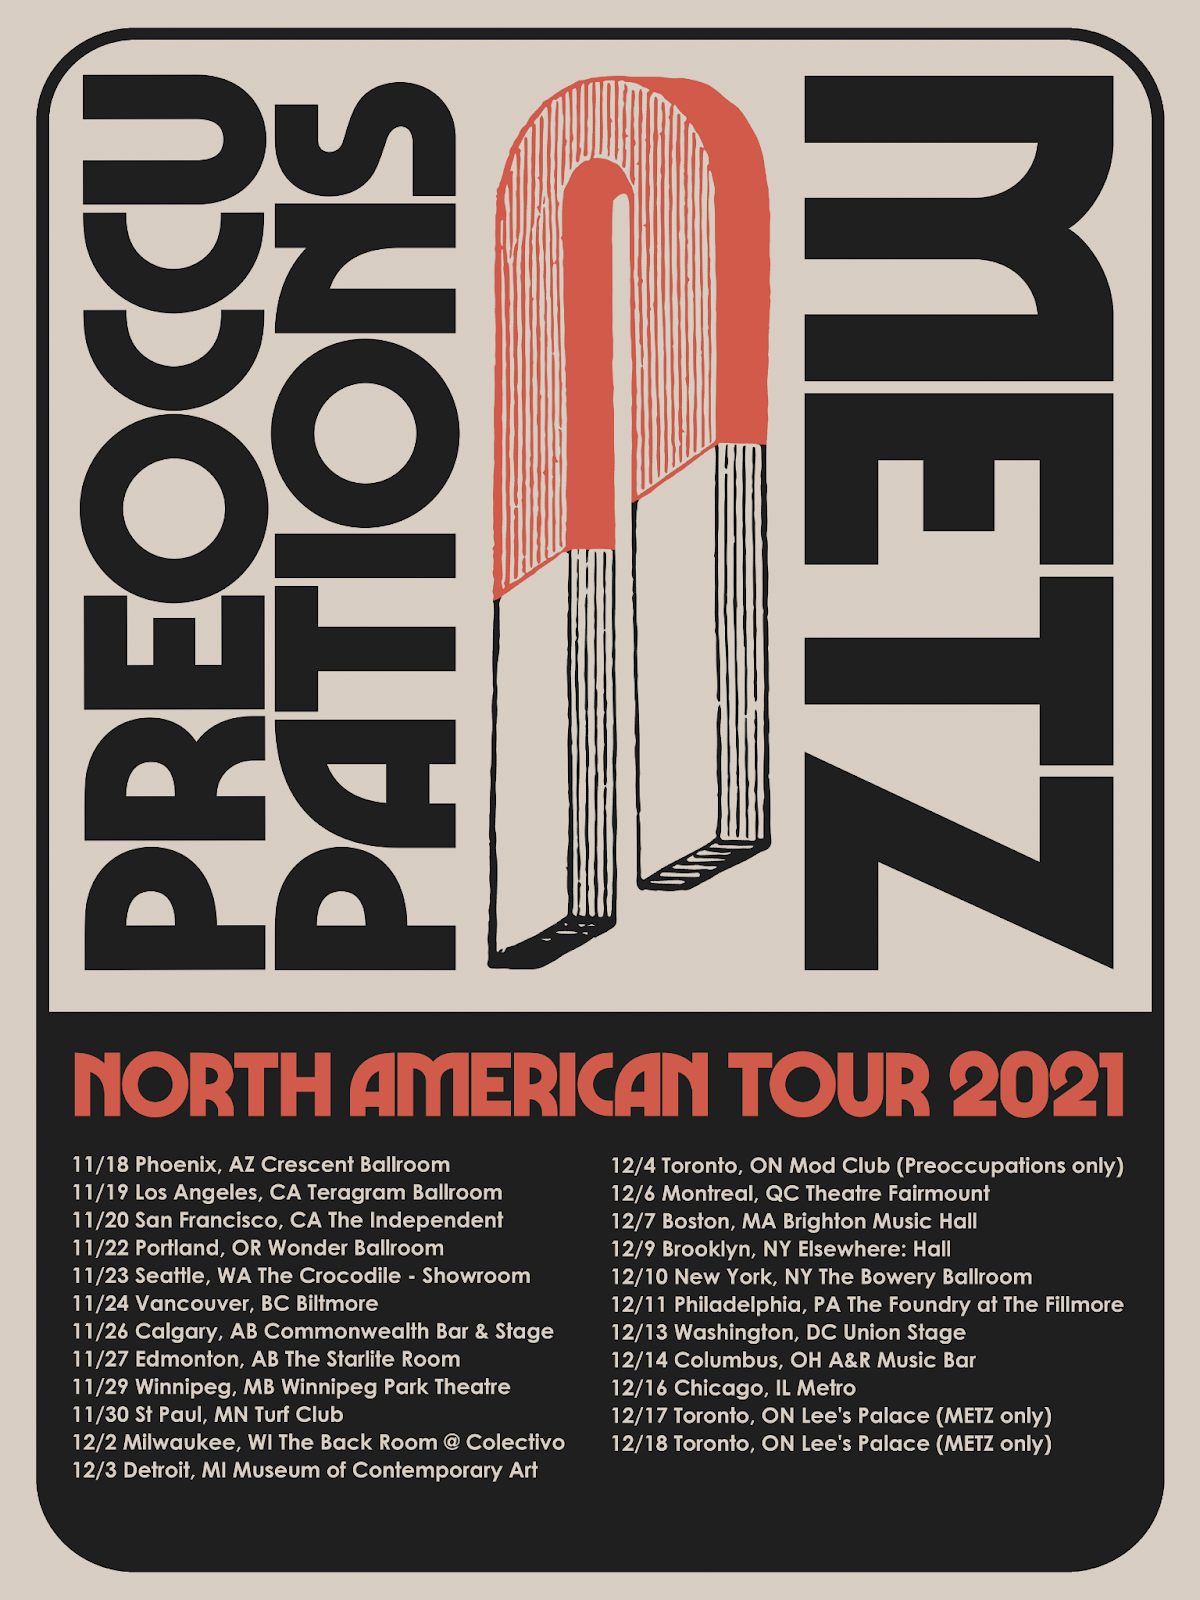 Preoccupations + Metz: North American Tour 2021